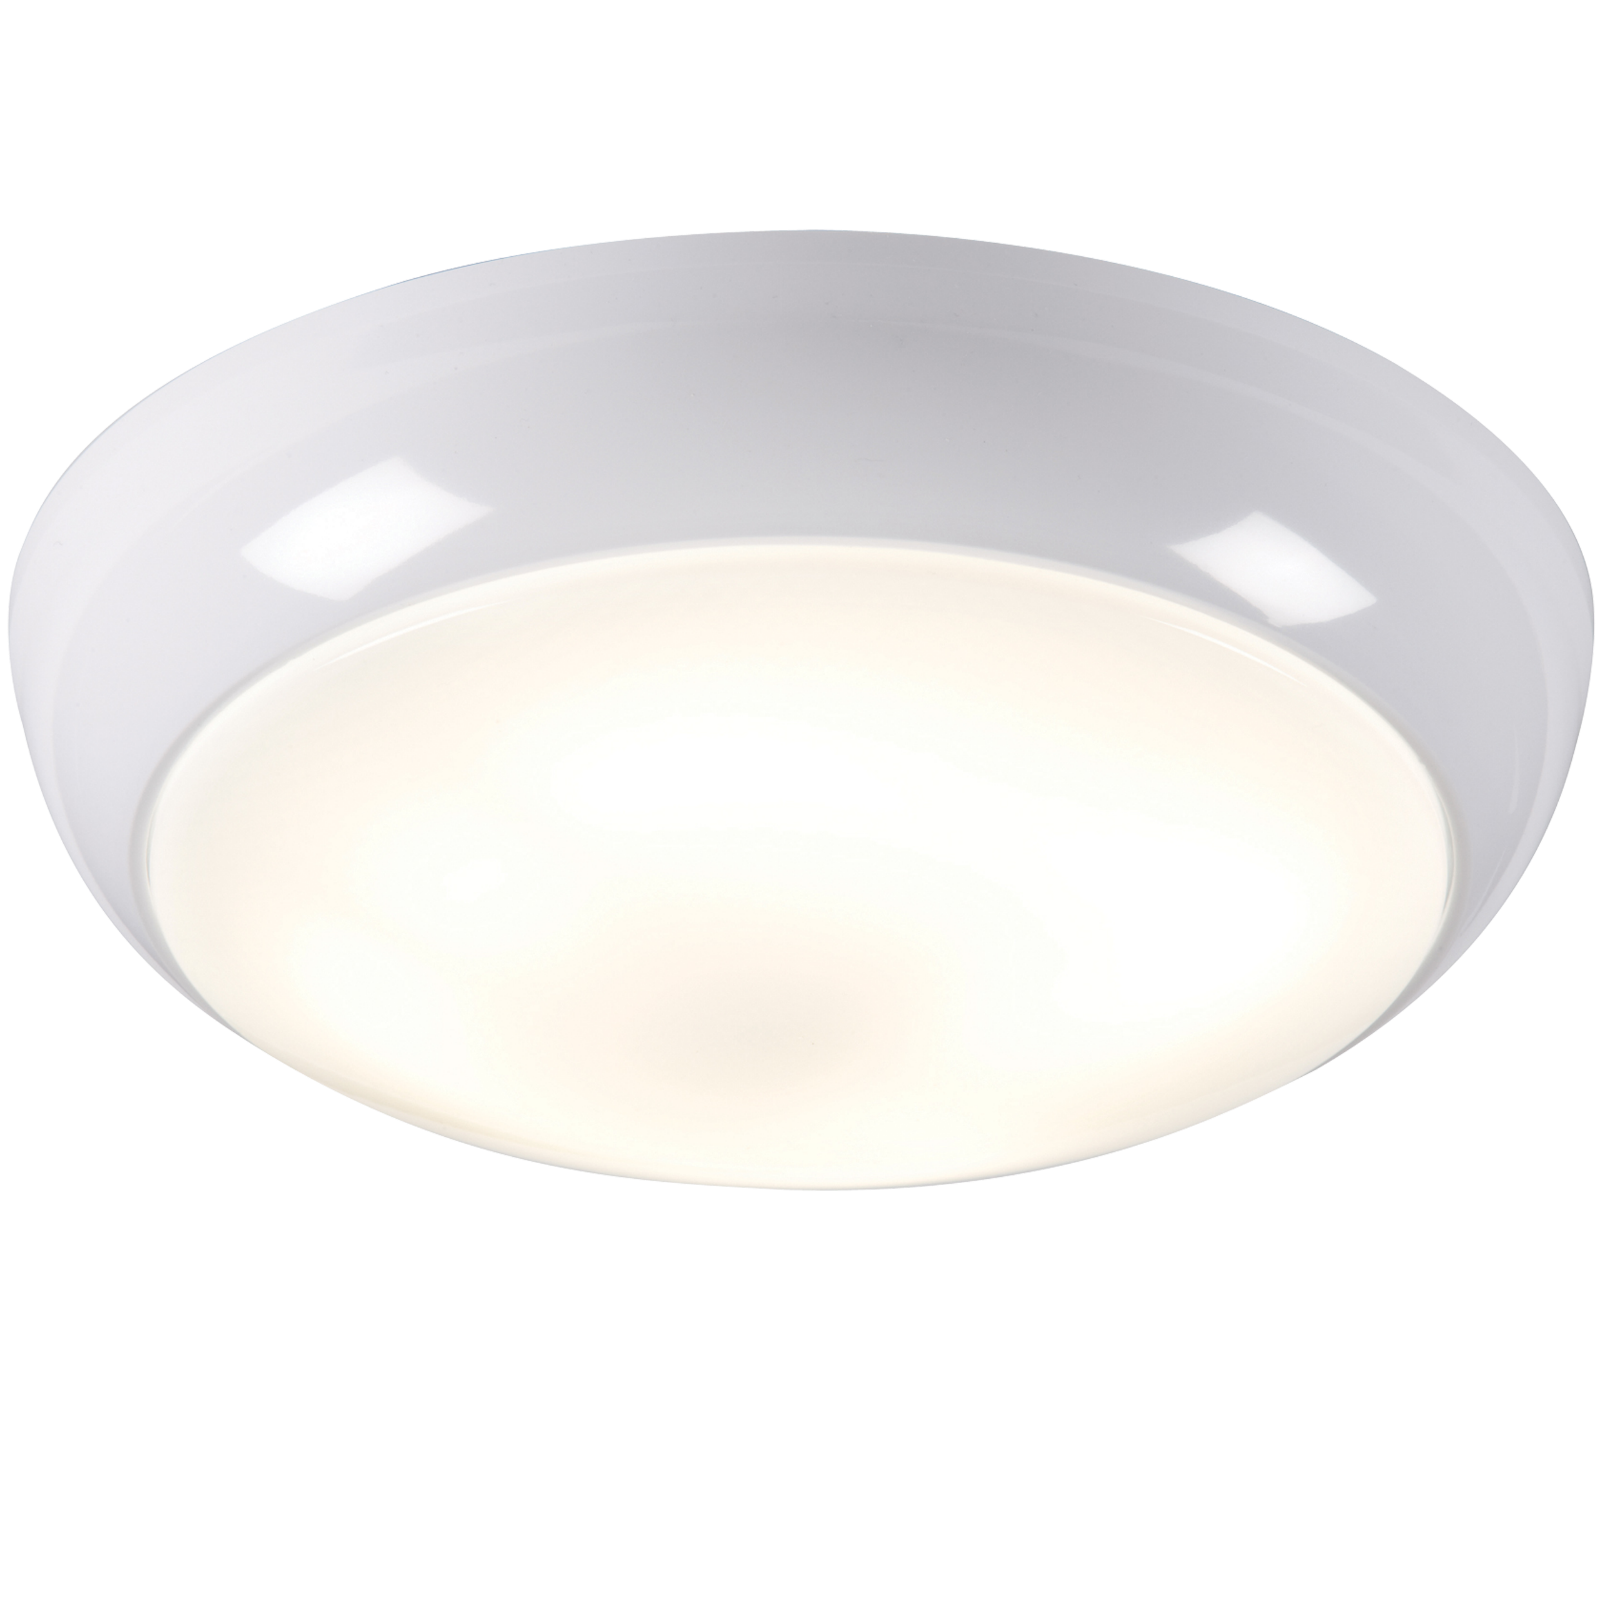 IP44 28W HF Emergency Polo Bulkhead with Opal Diffuser, White Base and microwave sensor